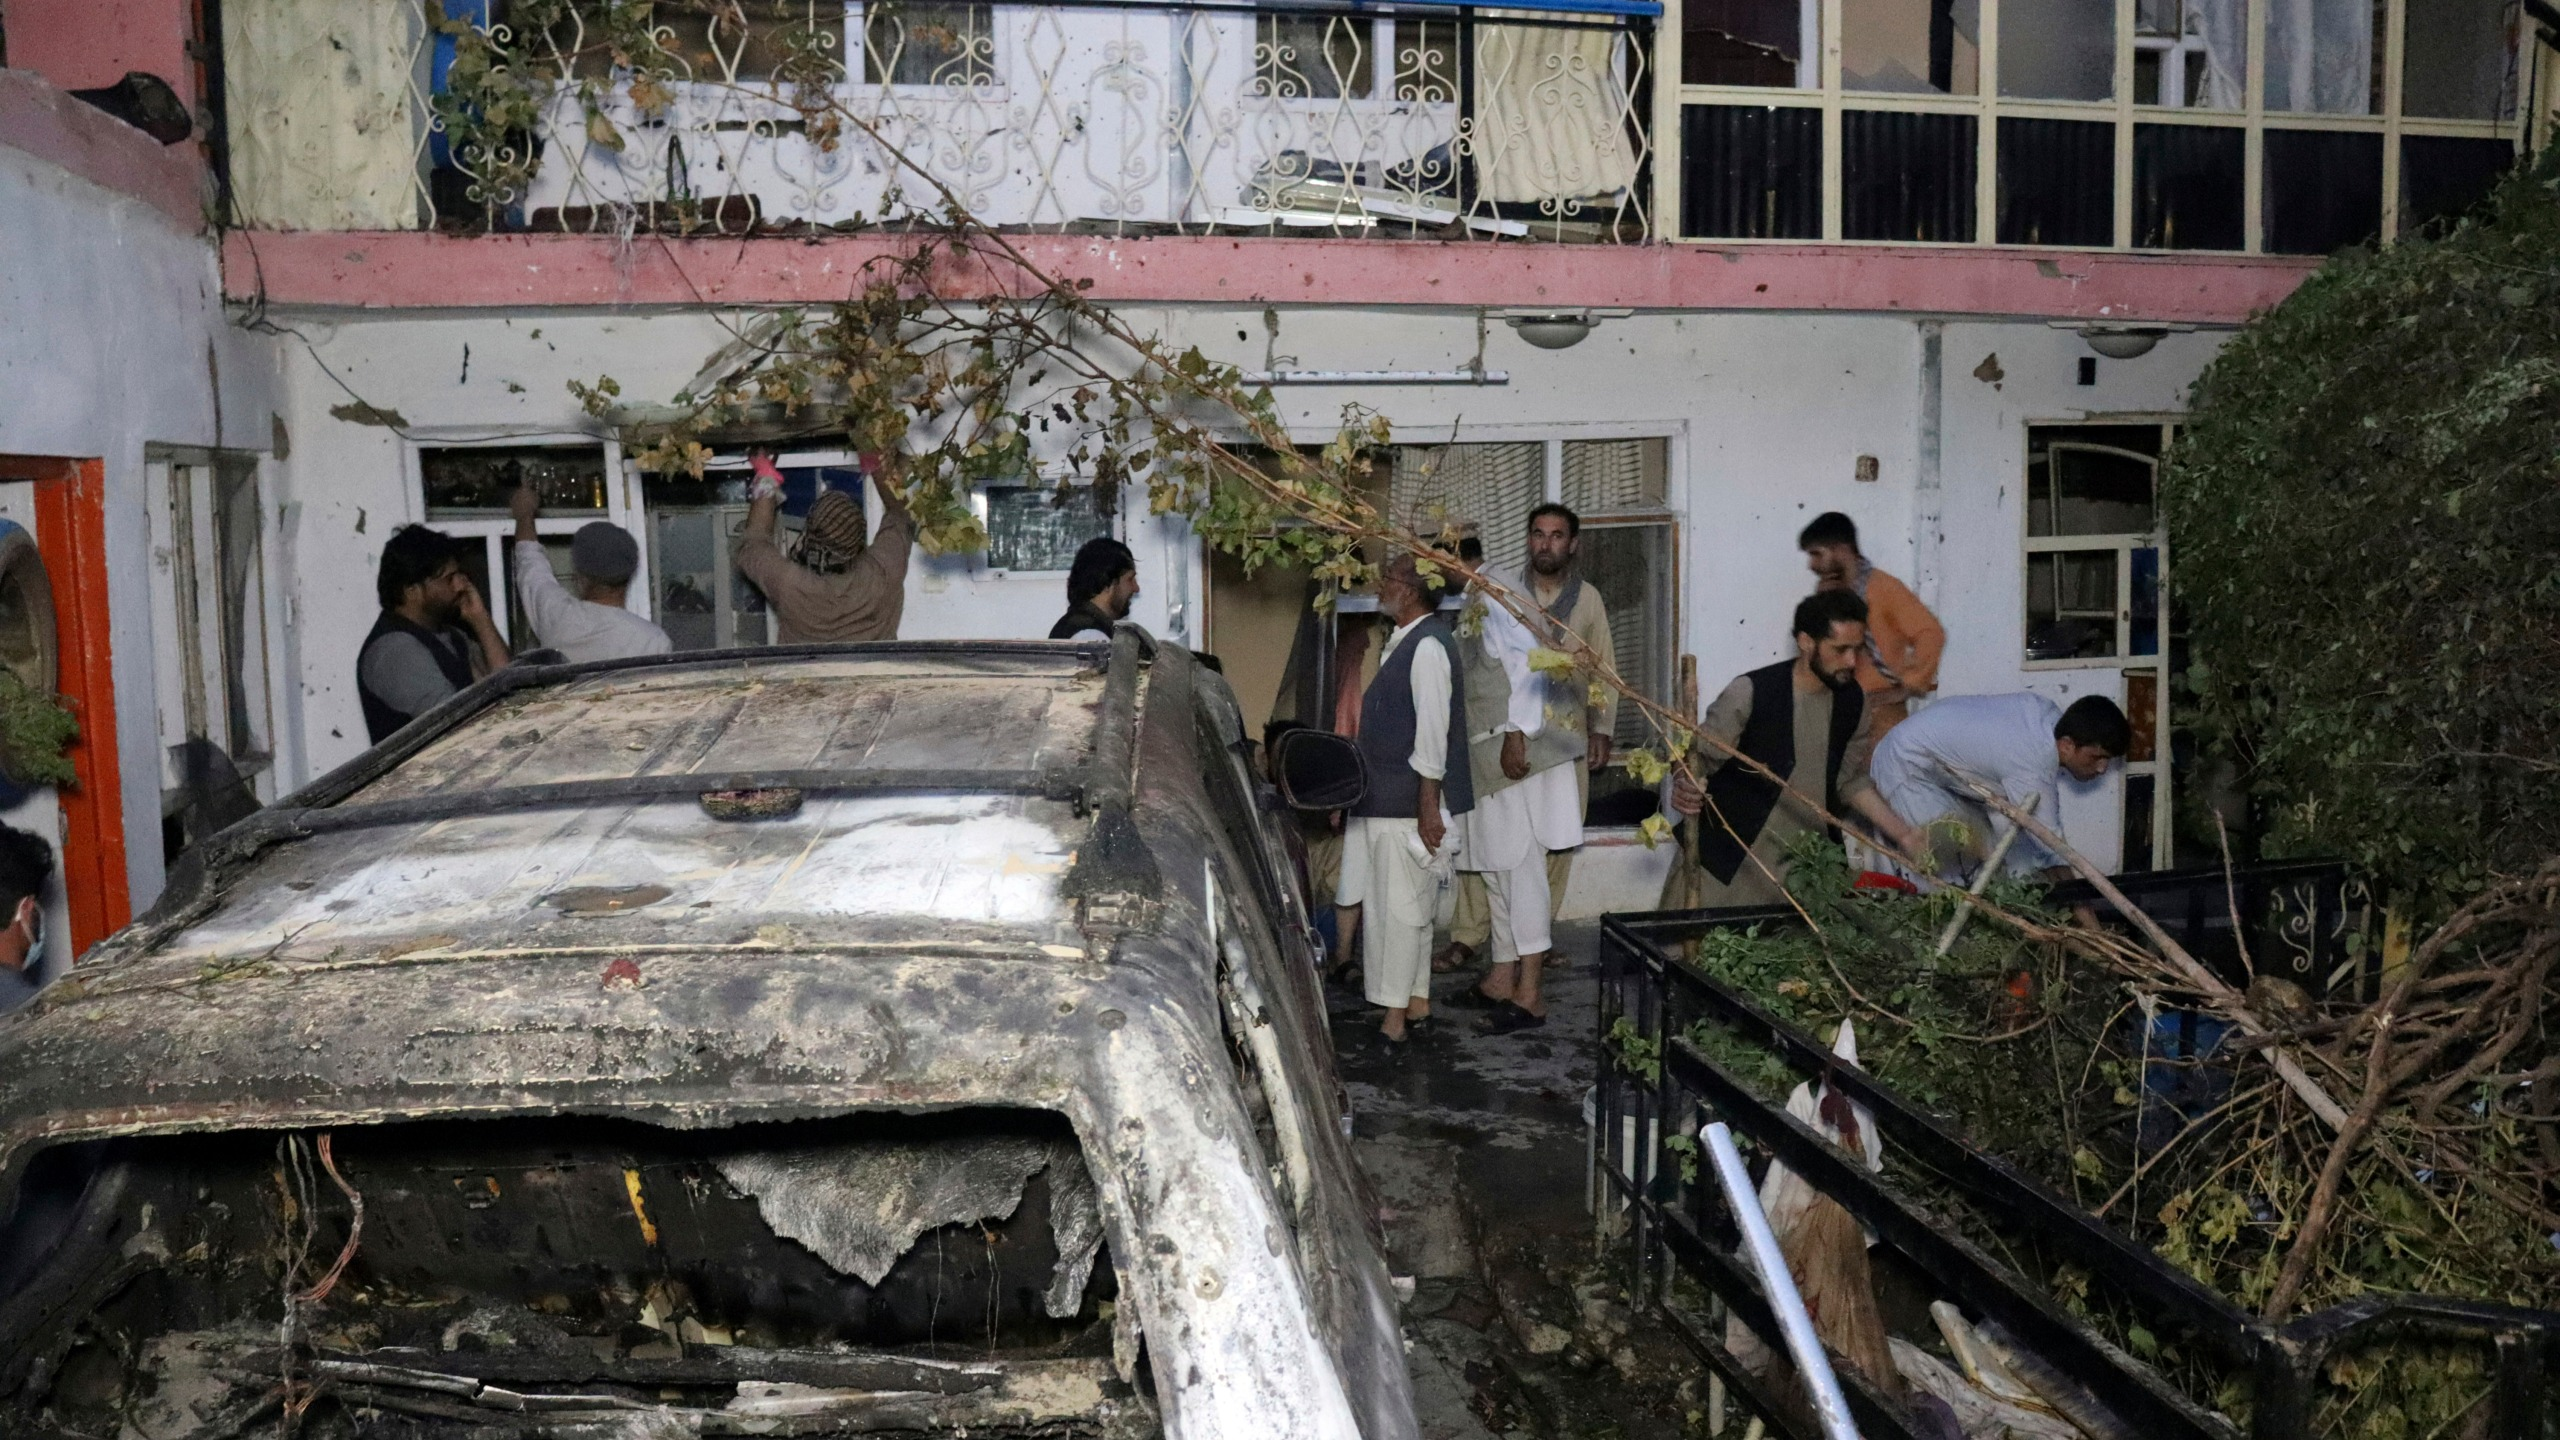 """Afghan people are seen inside a house after U.S. drone strike in Kabul, Afghanistan, Sunday, Aug. 29, 2021. A U.S. drone strike destroyed a vehicle carrying """"multiple suicide bombers"""" from Afghanistan's Islamic State affiliate on Sunday before they could attack the ongoing military evacuation at Kabul's international airport, American officials said. (AP Photo/Khwaja Tawfiq Sediqi)"""